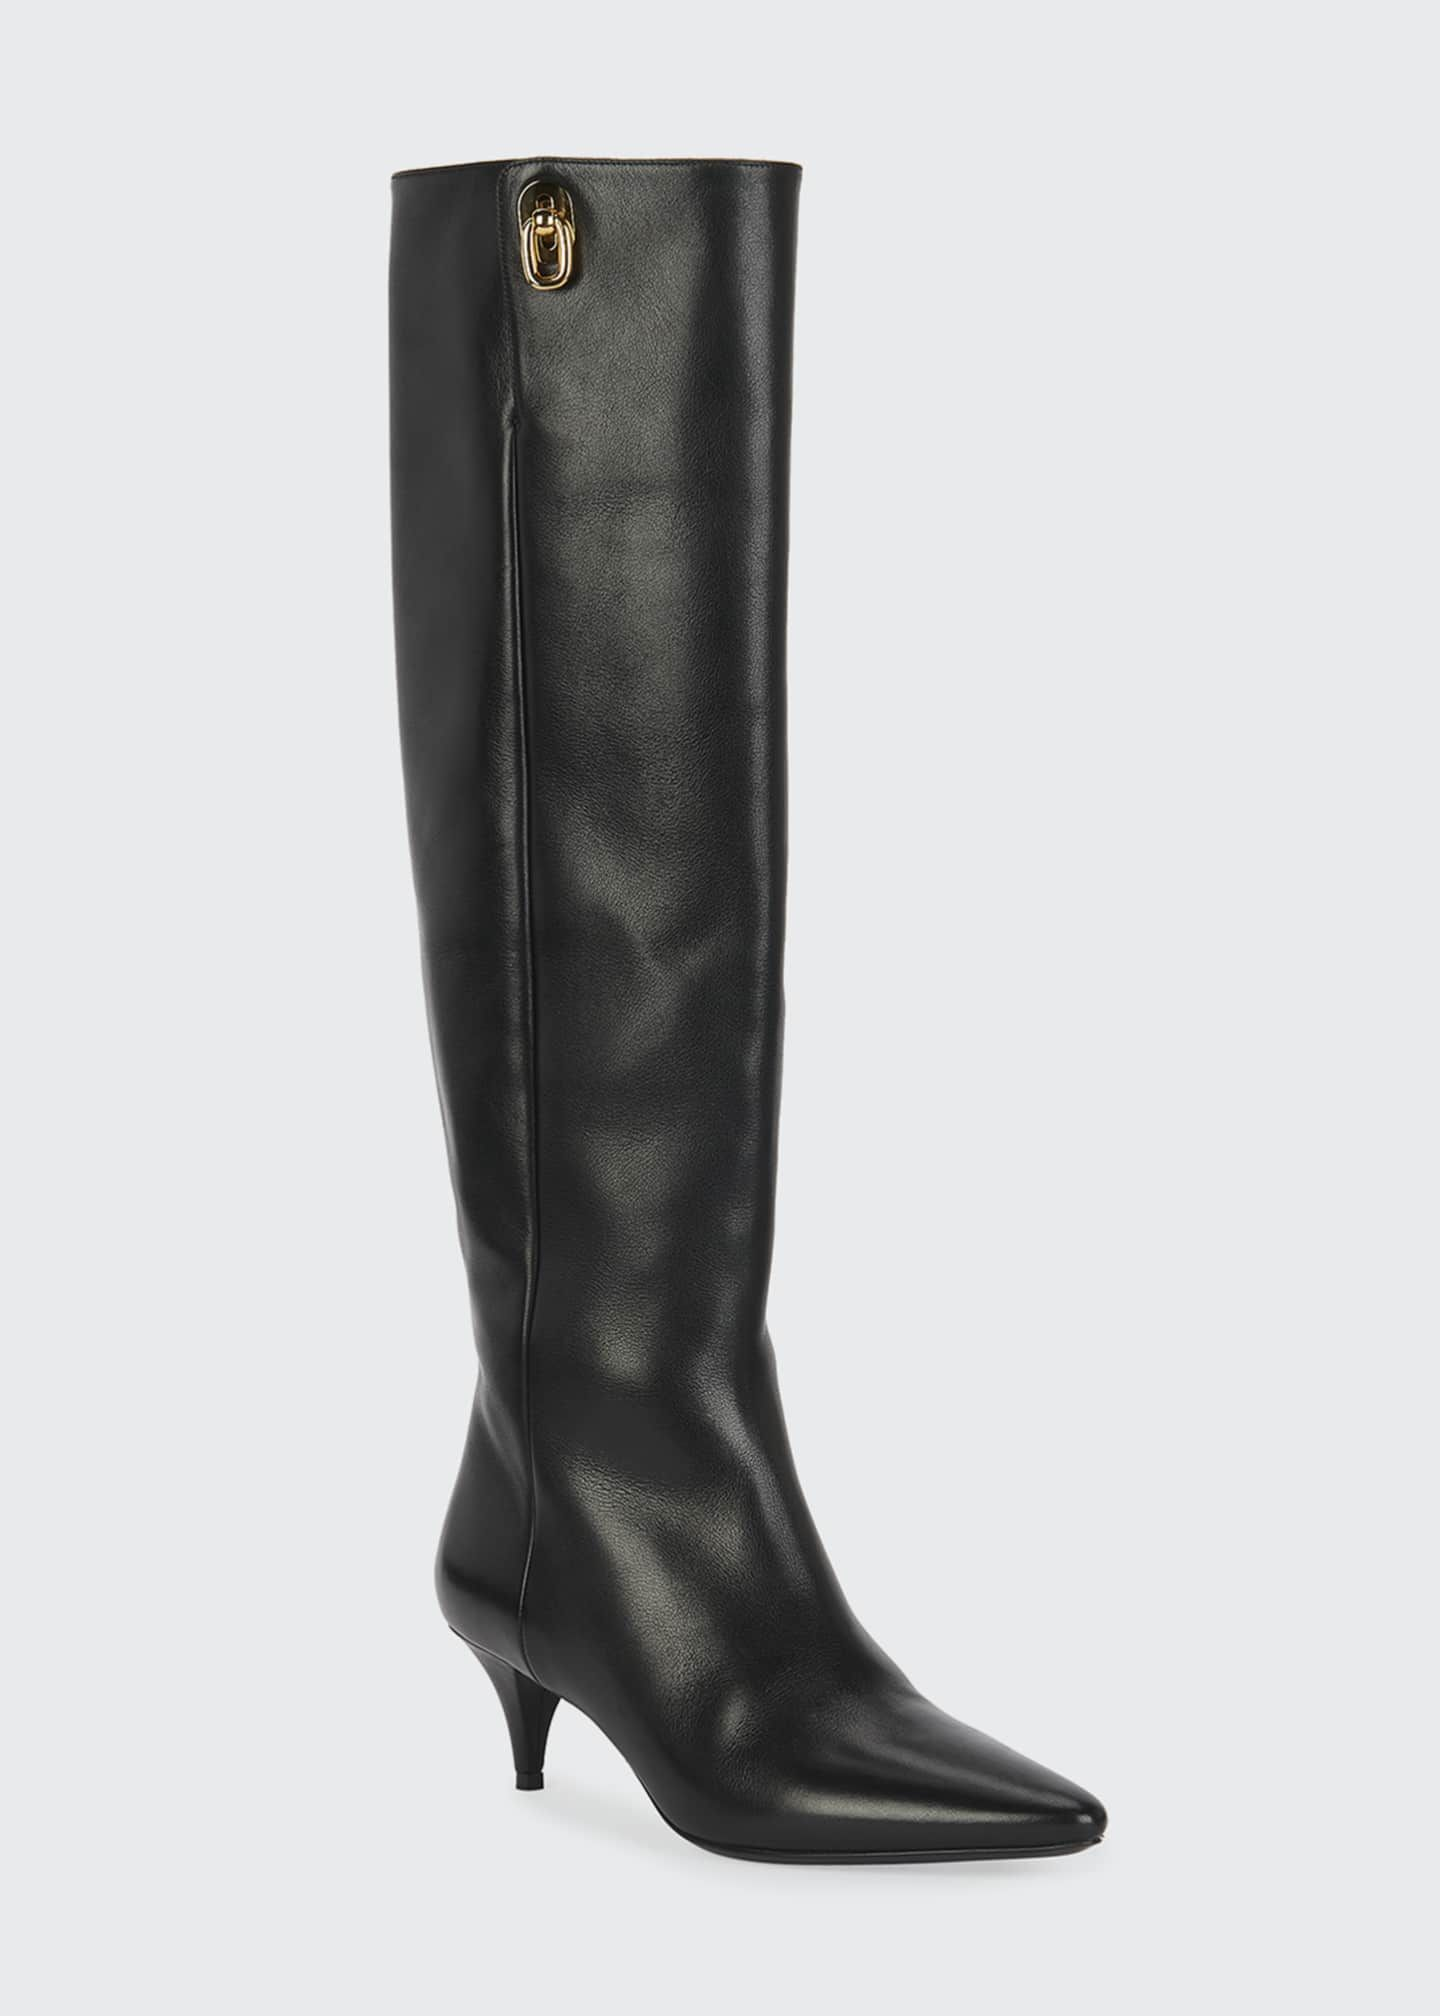 Tom Ford Kitten Heel Knee Boots In 2020 Boots Knee Boots Kitten Heels